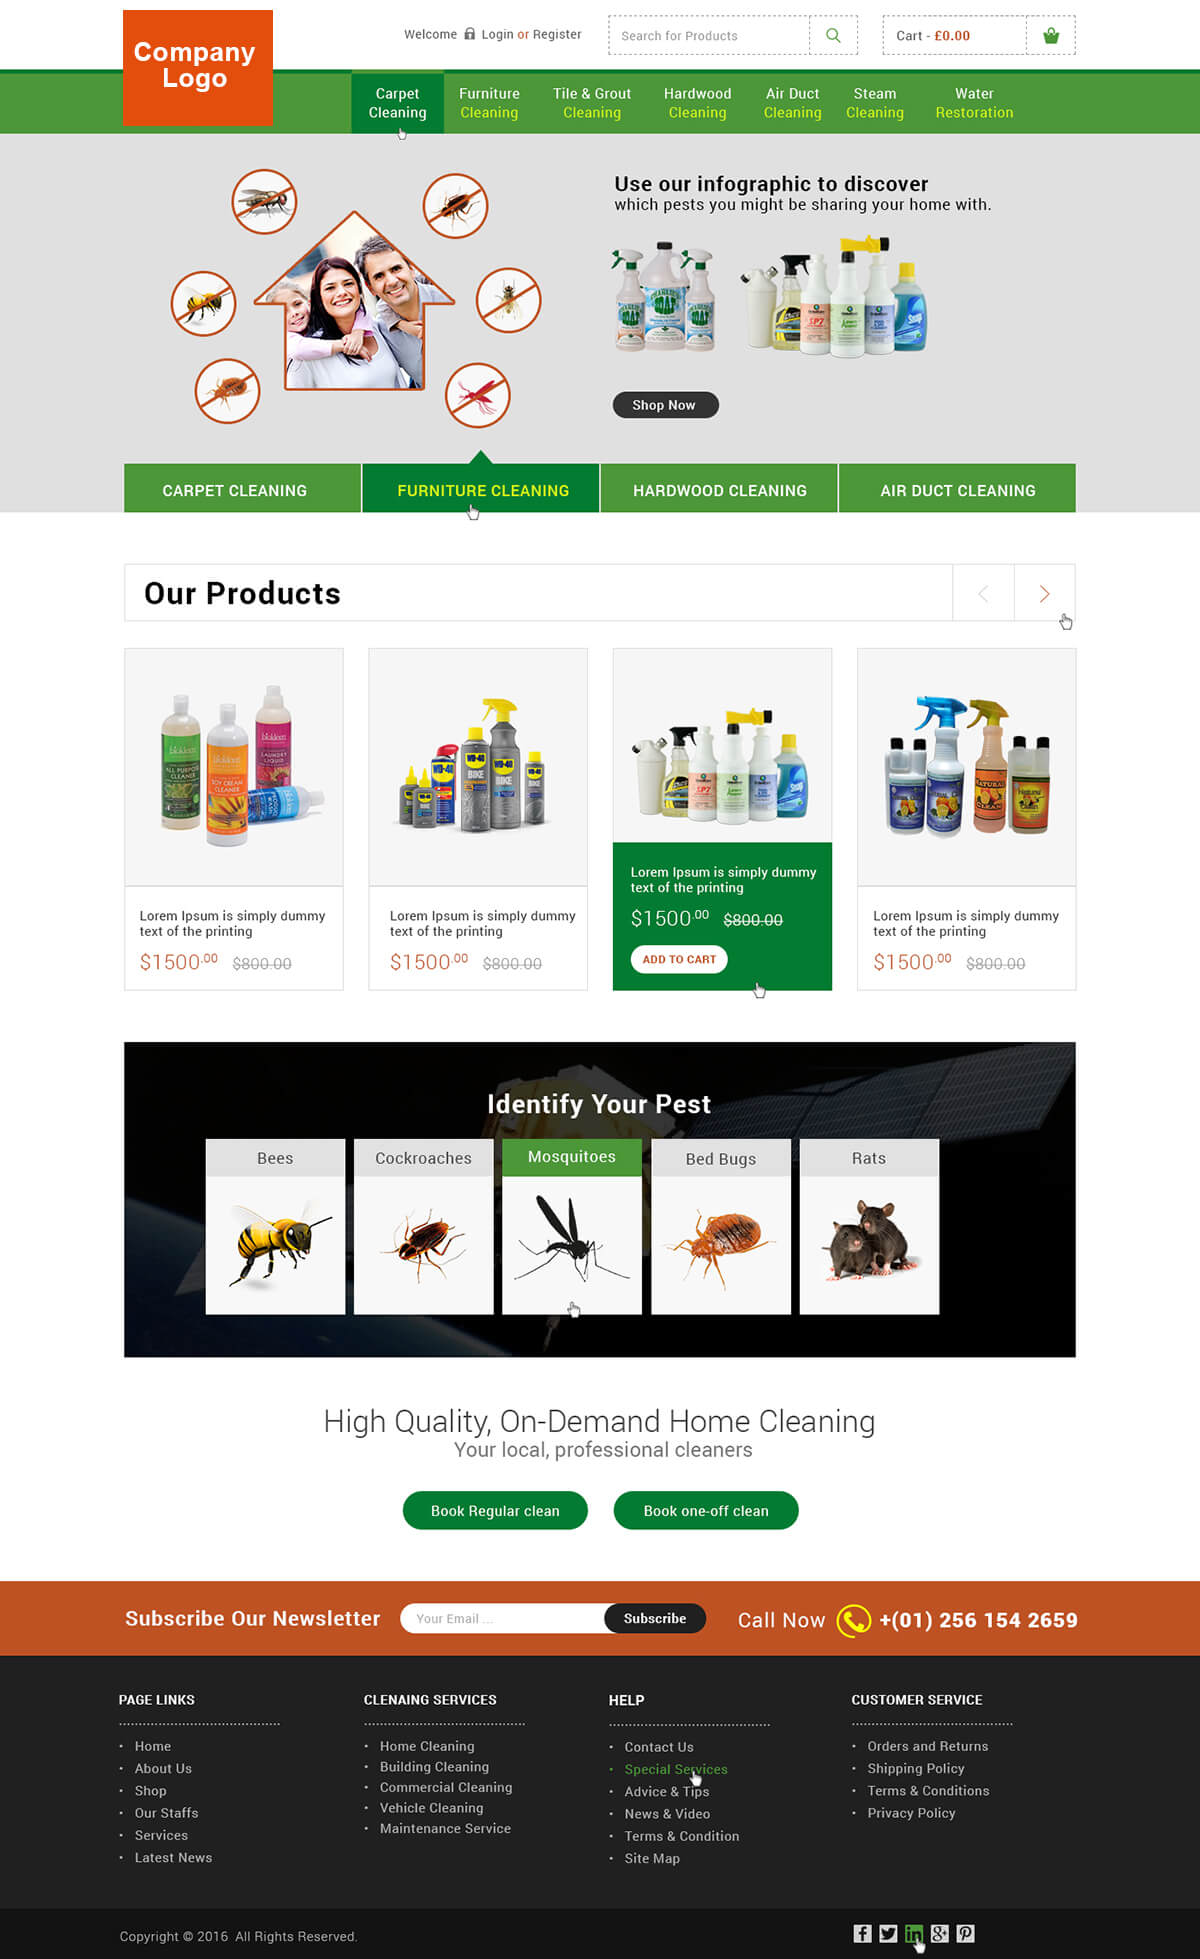 pest control service website template ved web services. Black Bedroom Furniture Sets. Home Design Ideas